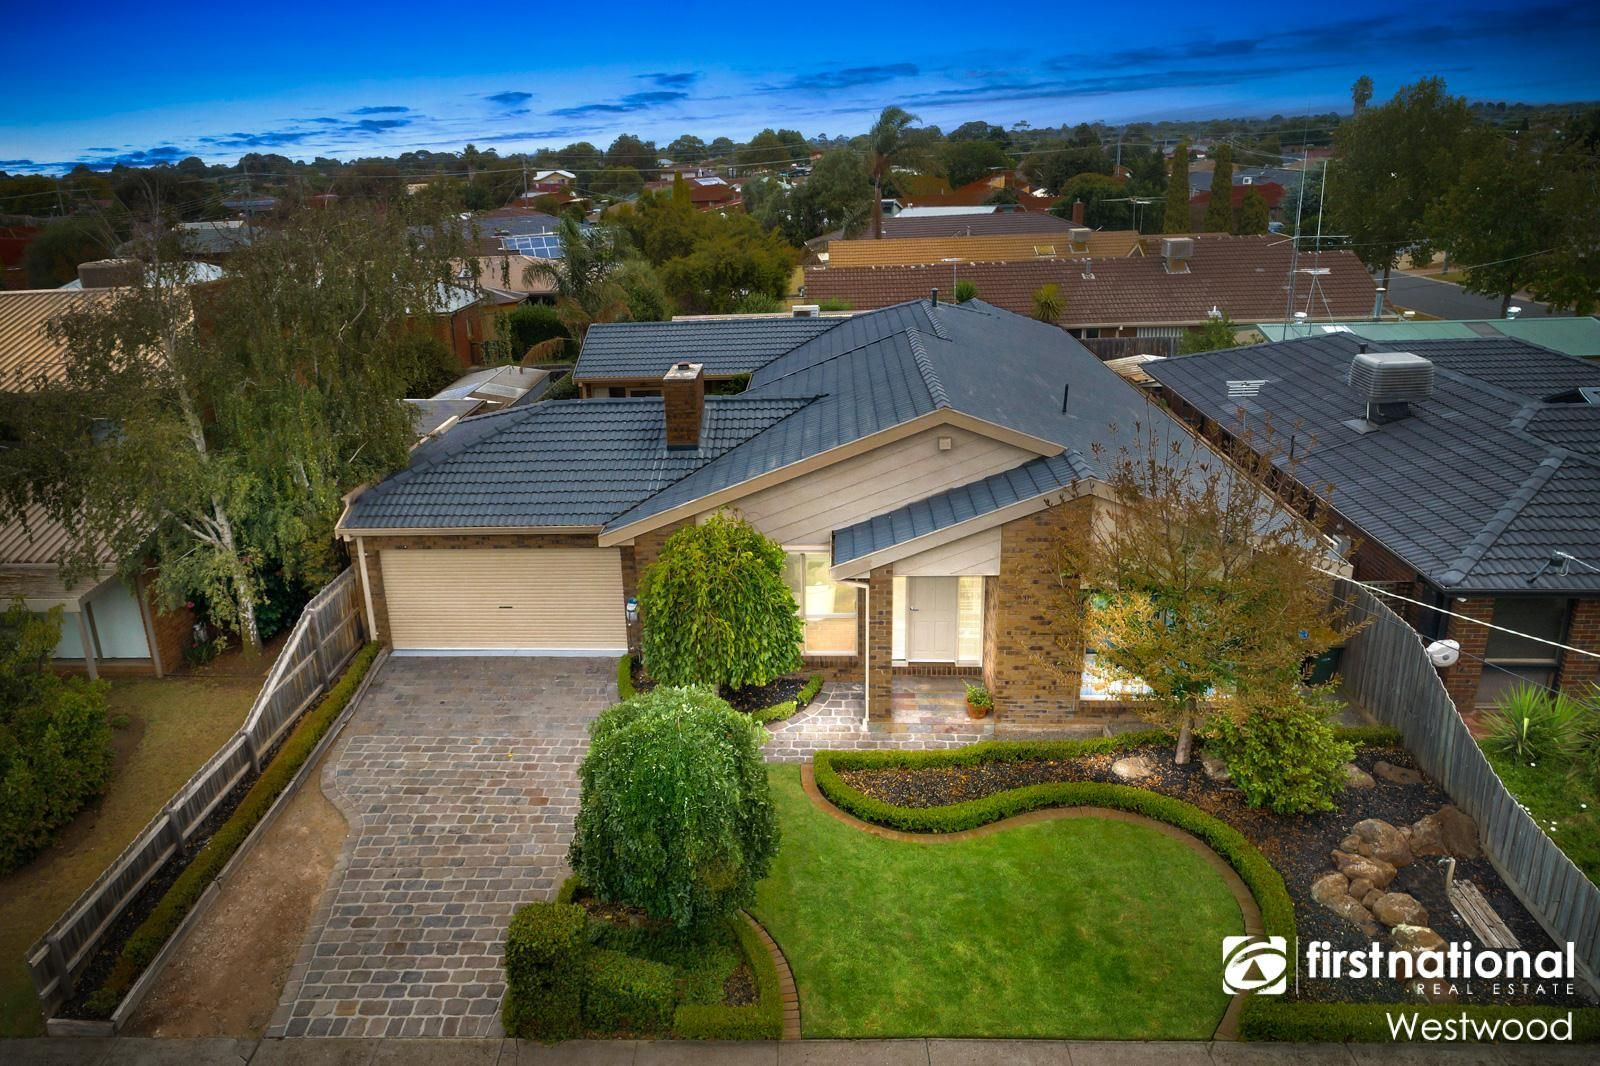 23 Outlook Drive, Werribee VIC 3030, Image 0